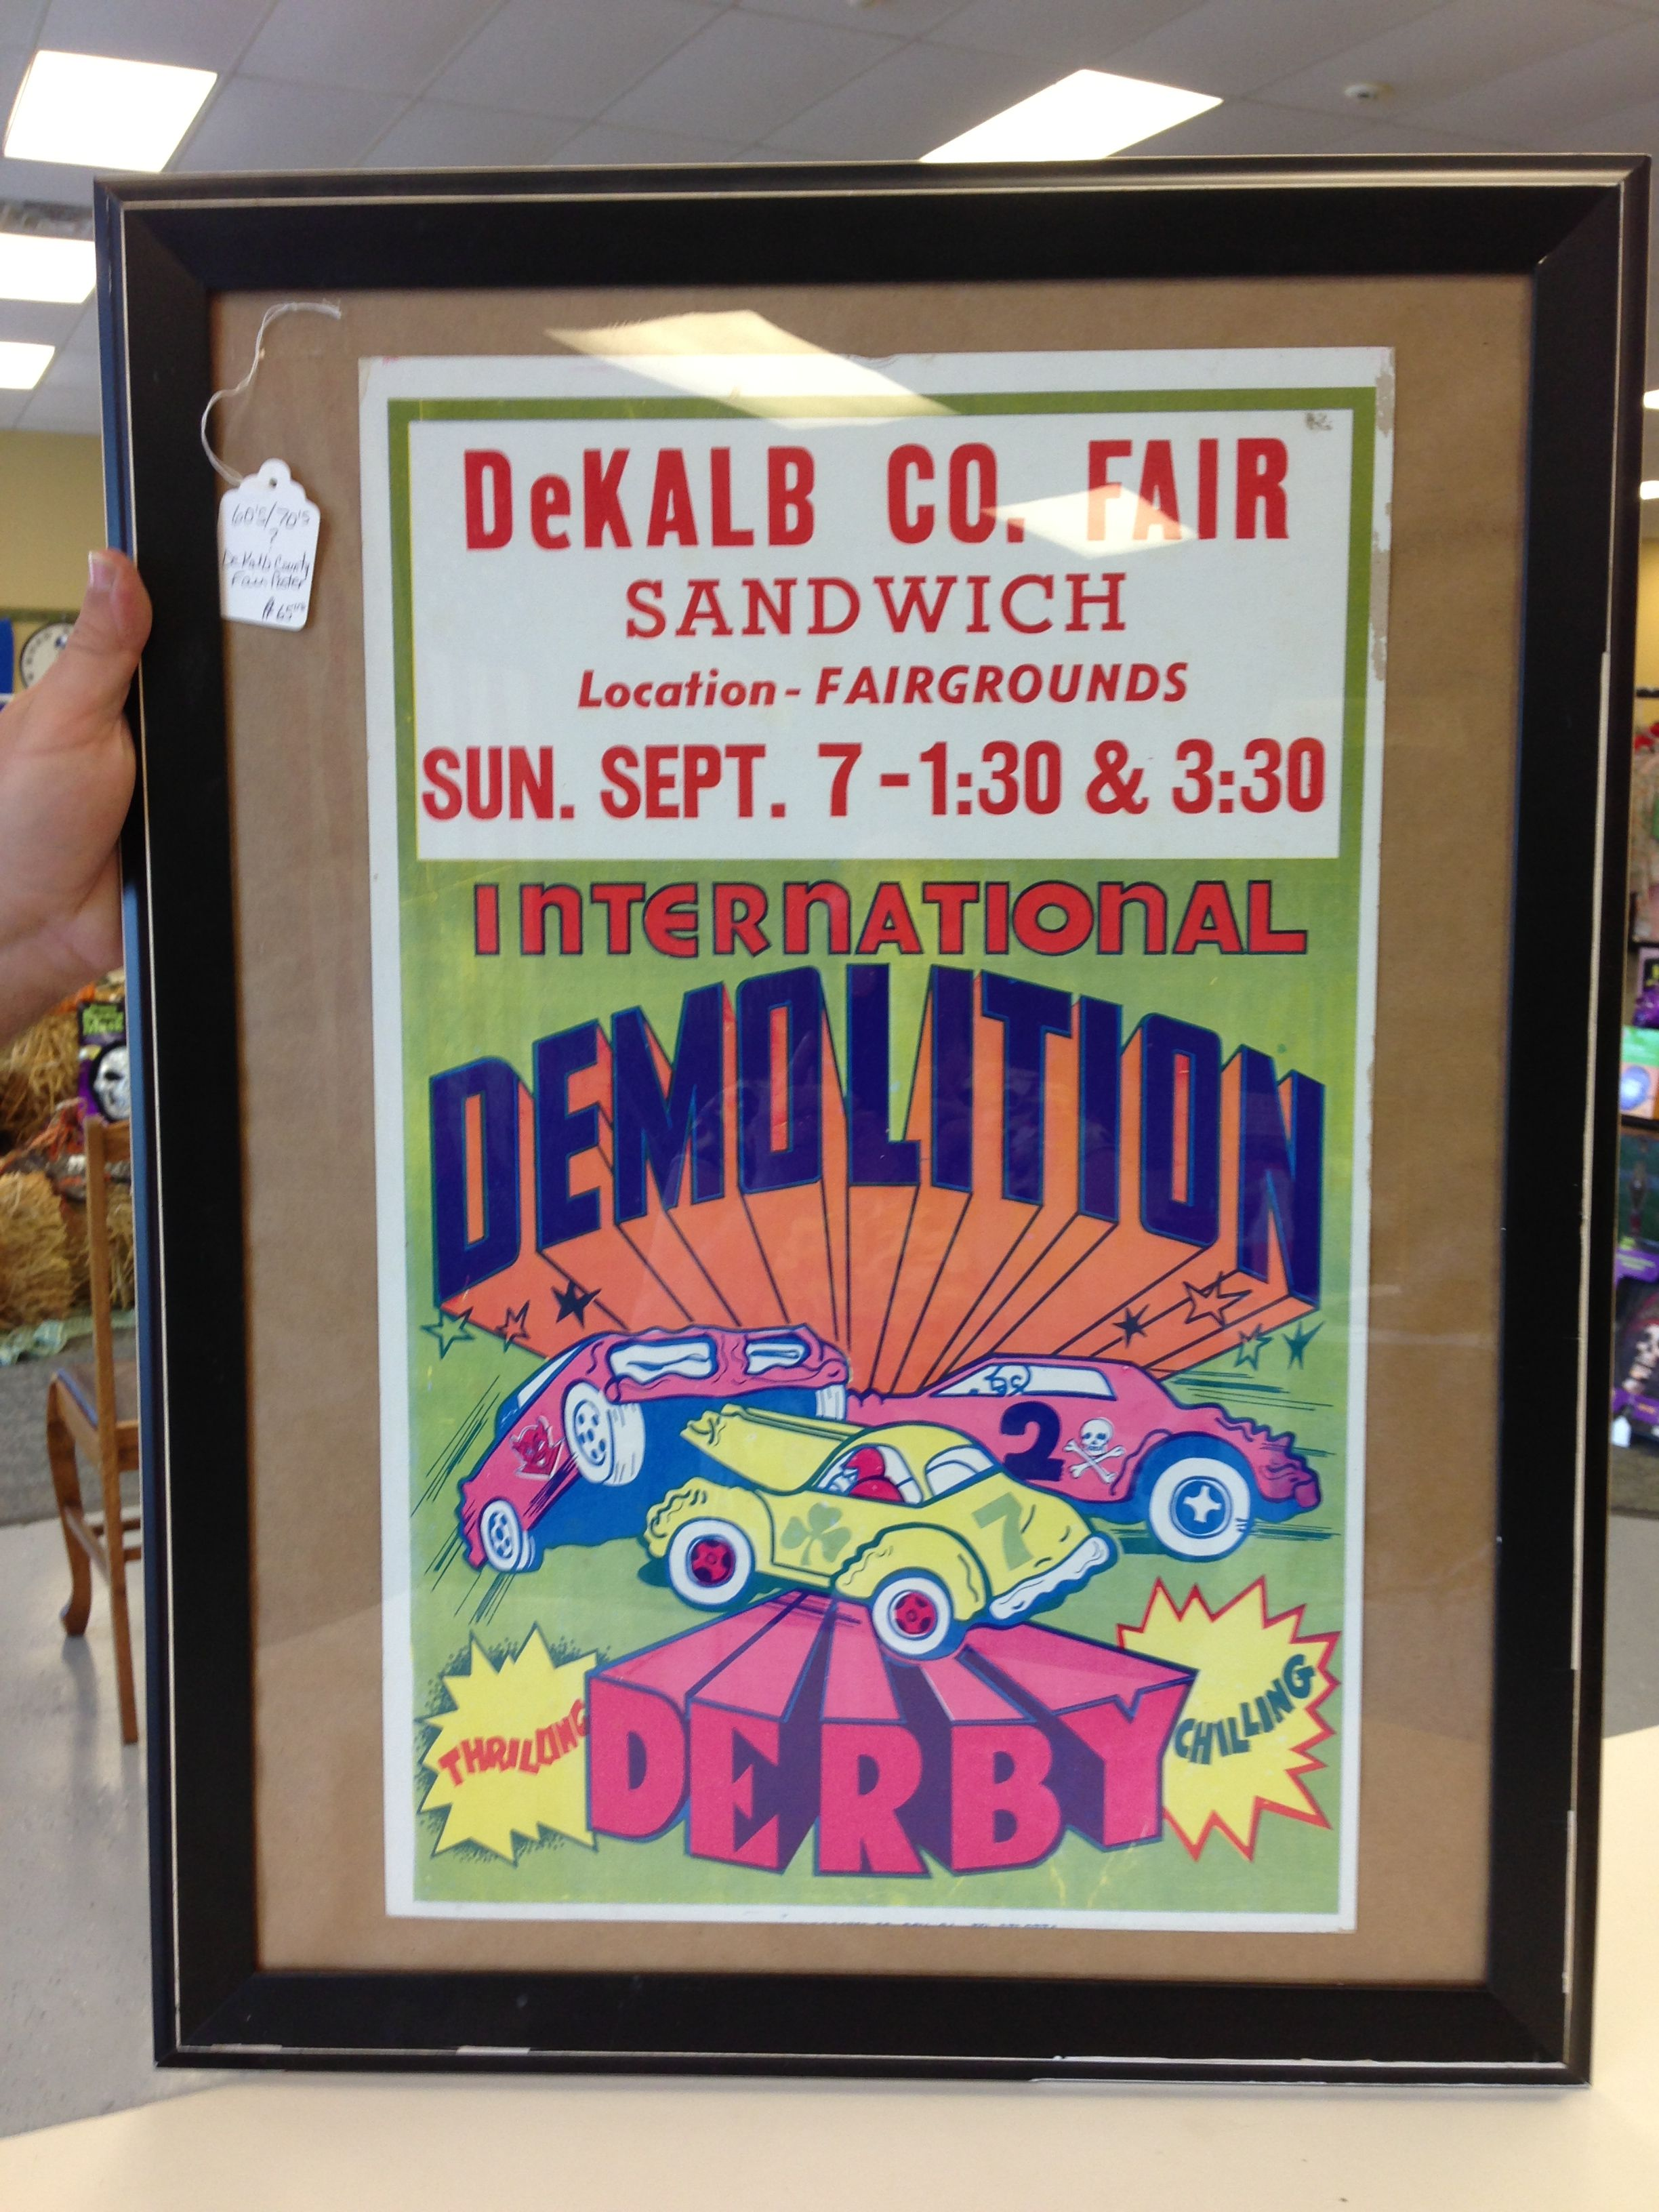 1969 poster for the DeKalb County fair, now known as the Sandwich (IL) Fair